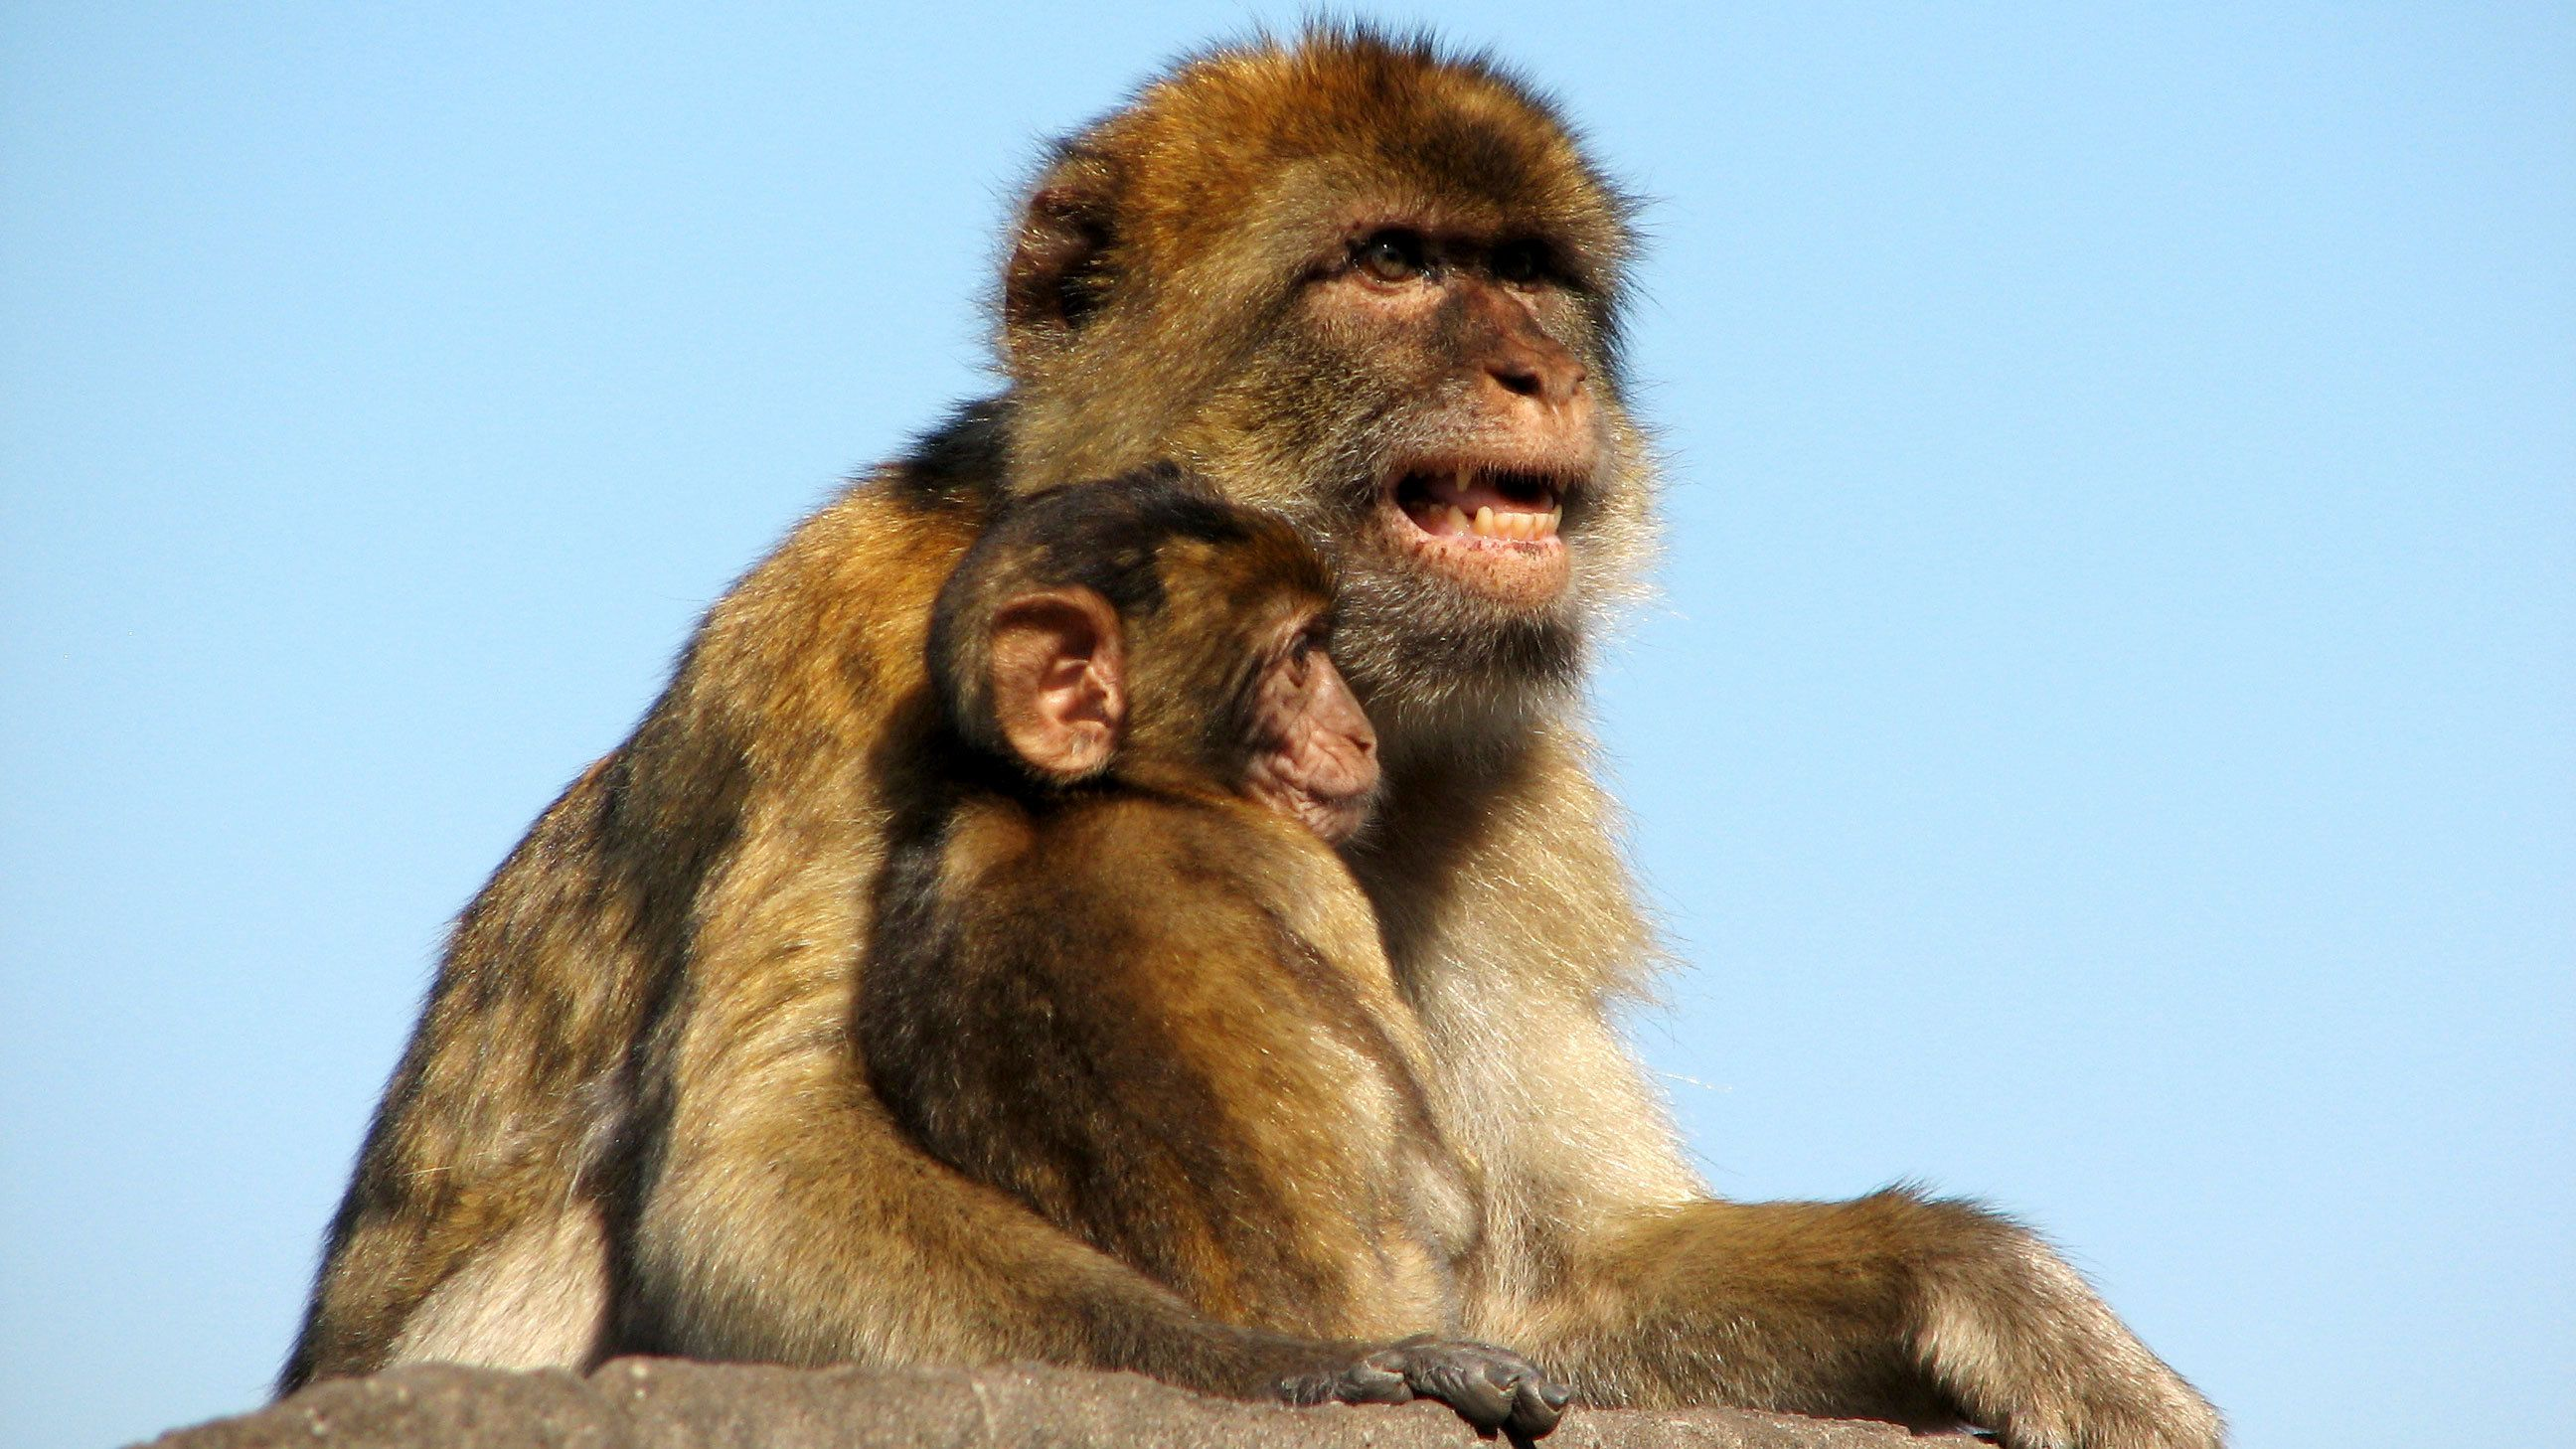 adult monkey holding its young in Gibraltar